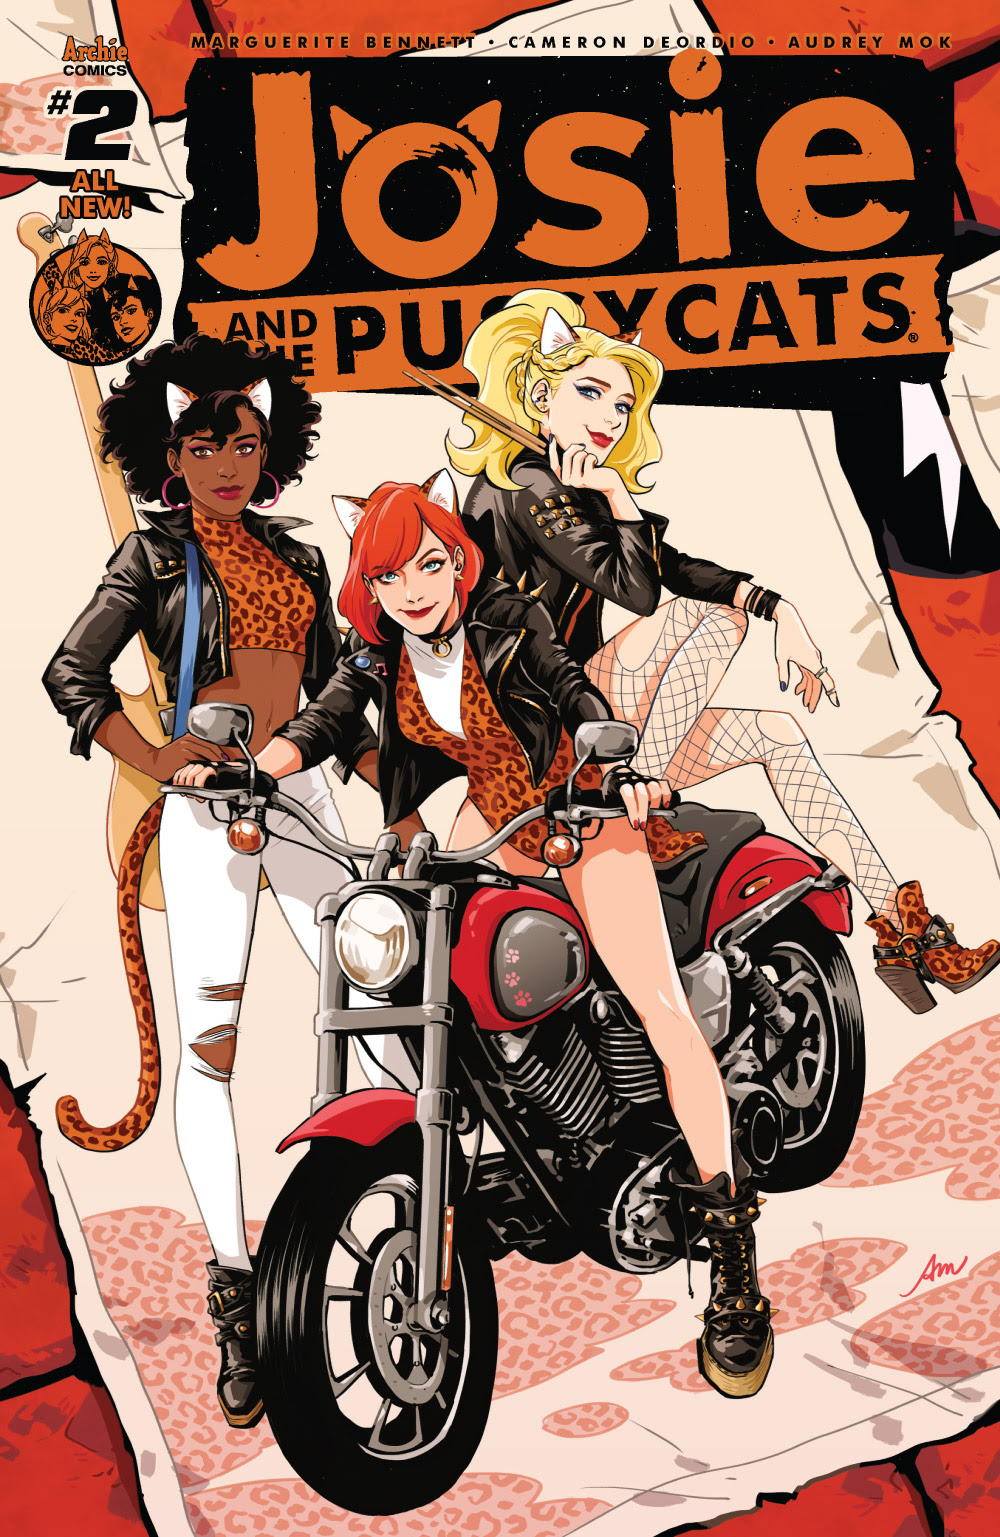 Josie and the Pussycats #2 cover